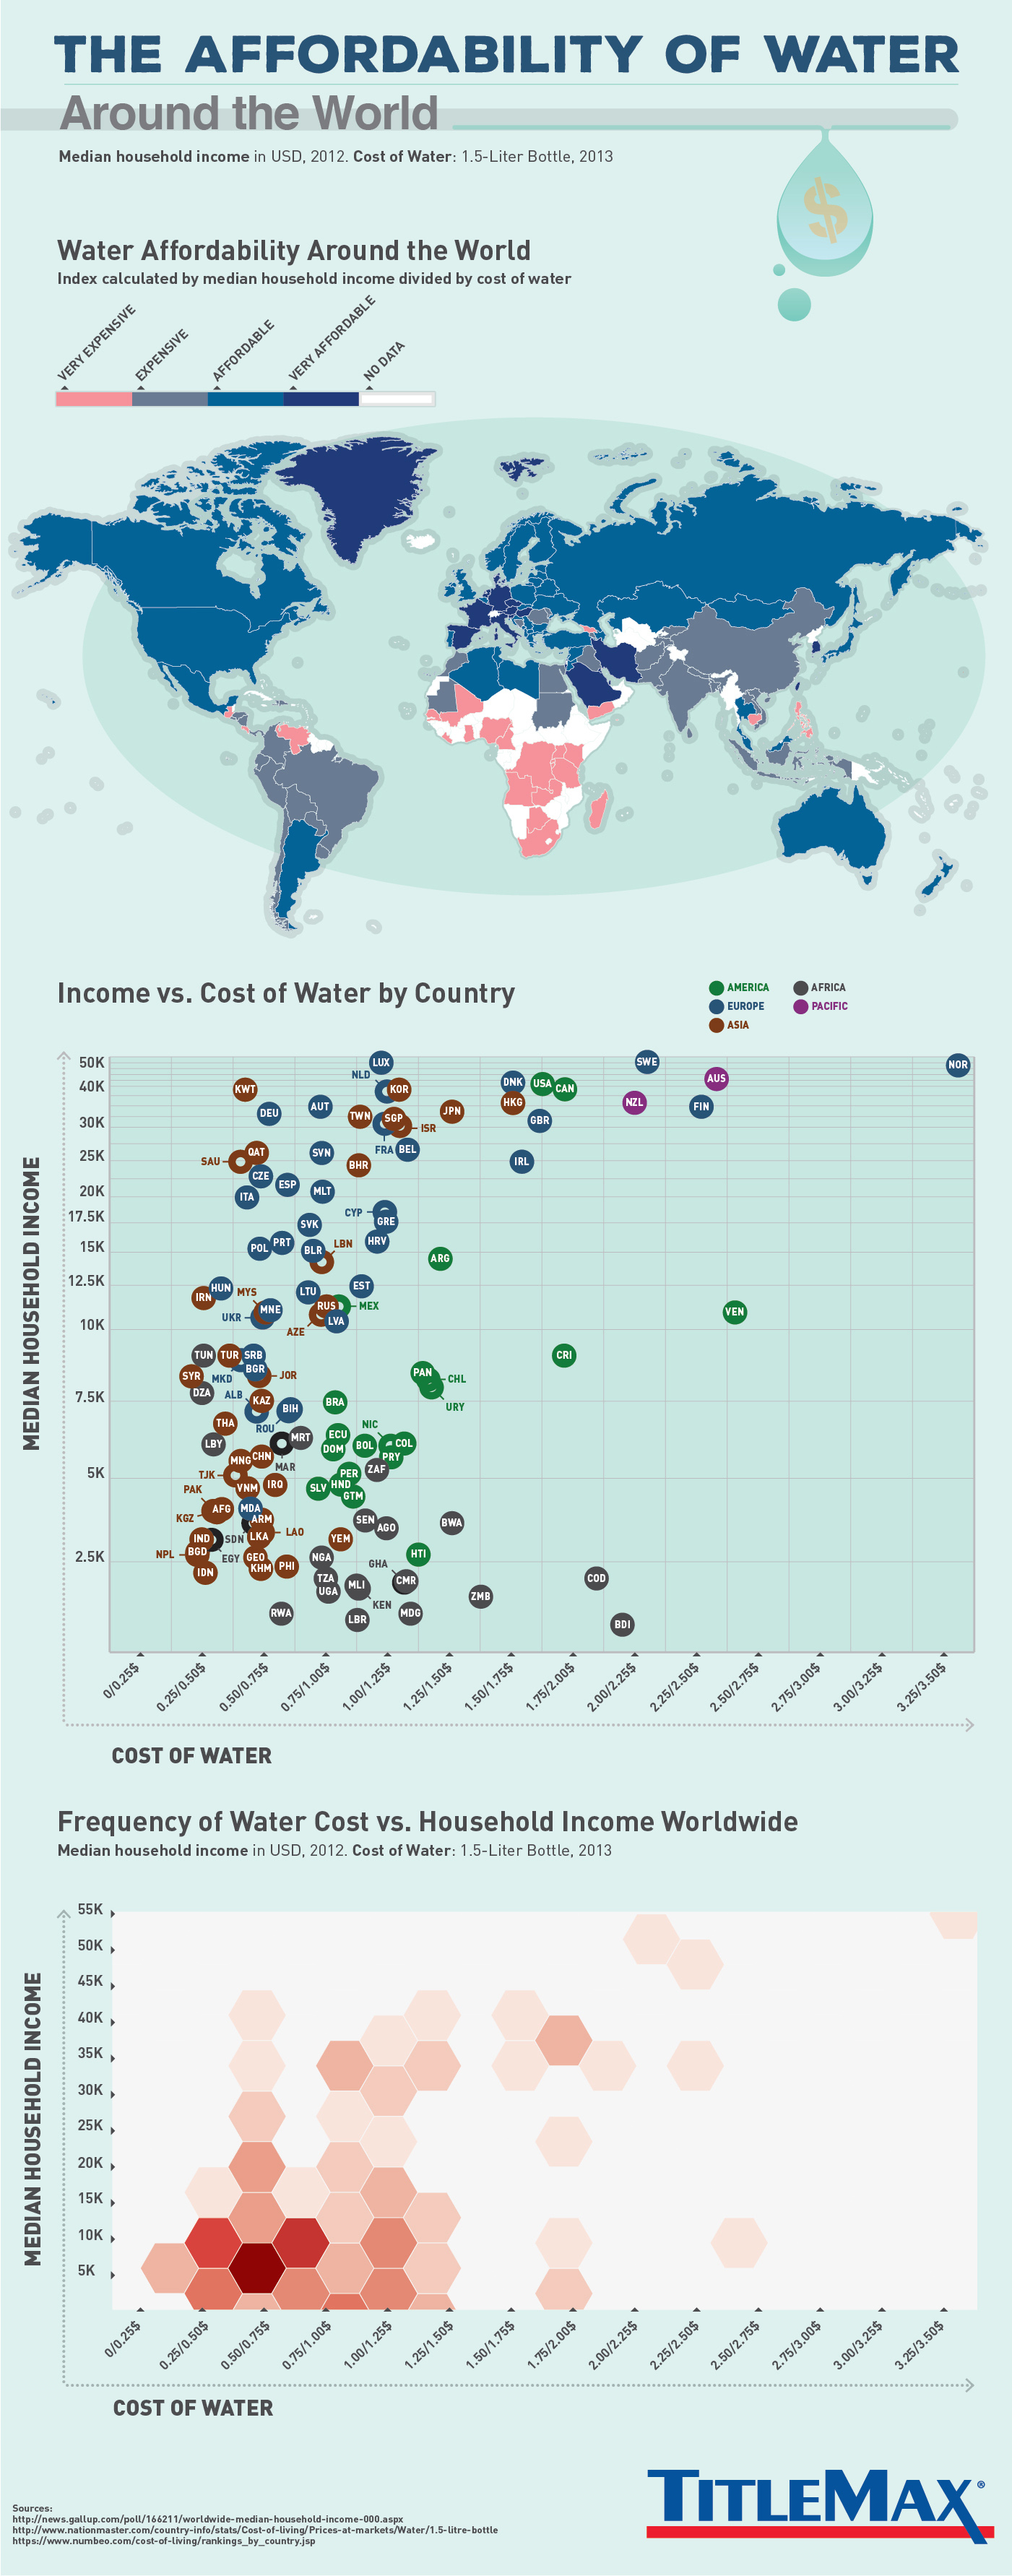 The Affordability of Water Around the World